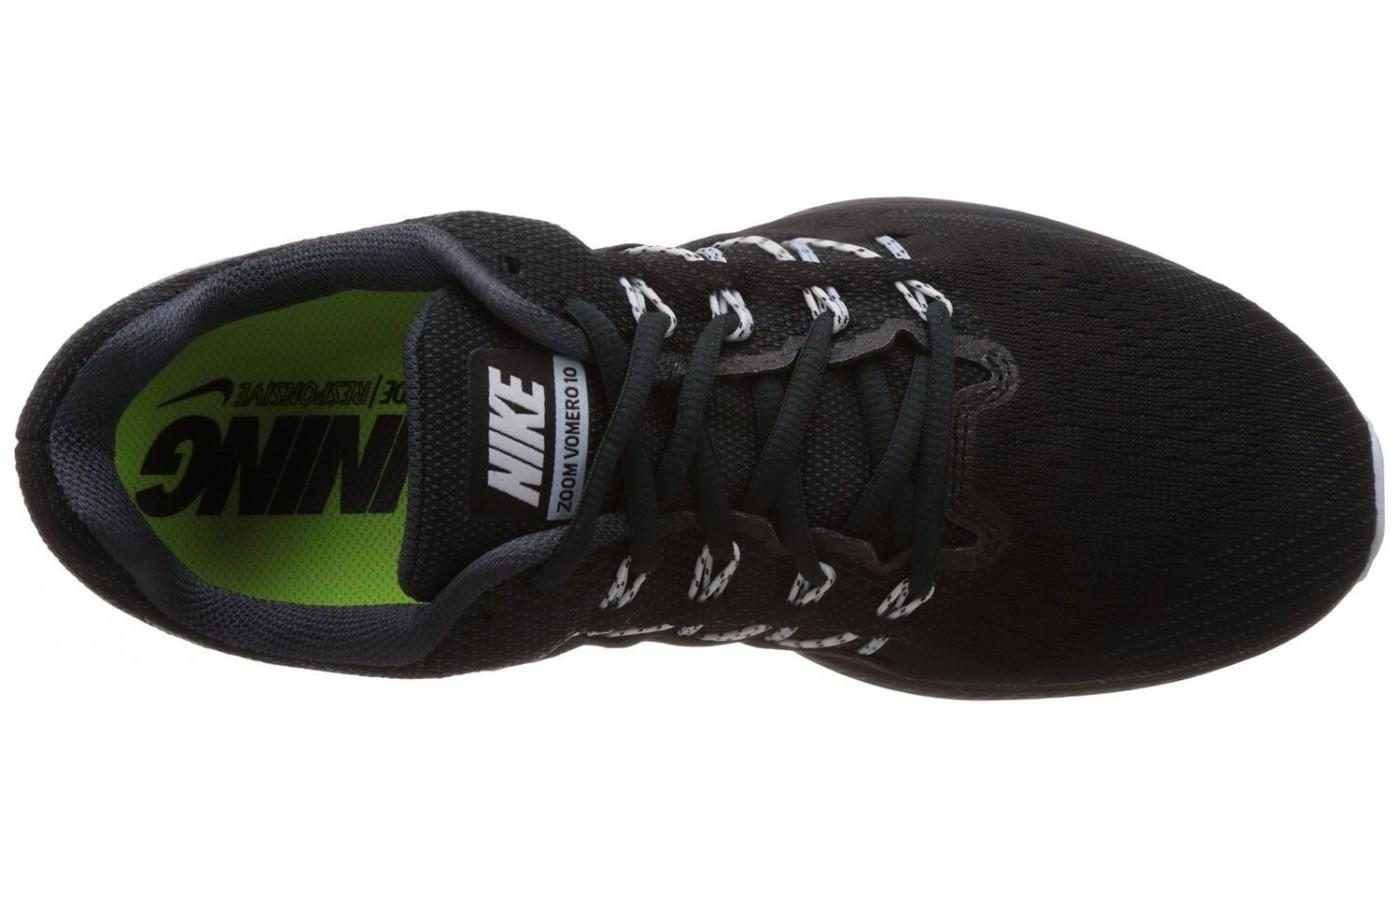 imperdonable Humildad Meditativo  Nike Air Zoom Vomero 10 Fully Reviewed | RunnerClick